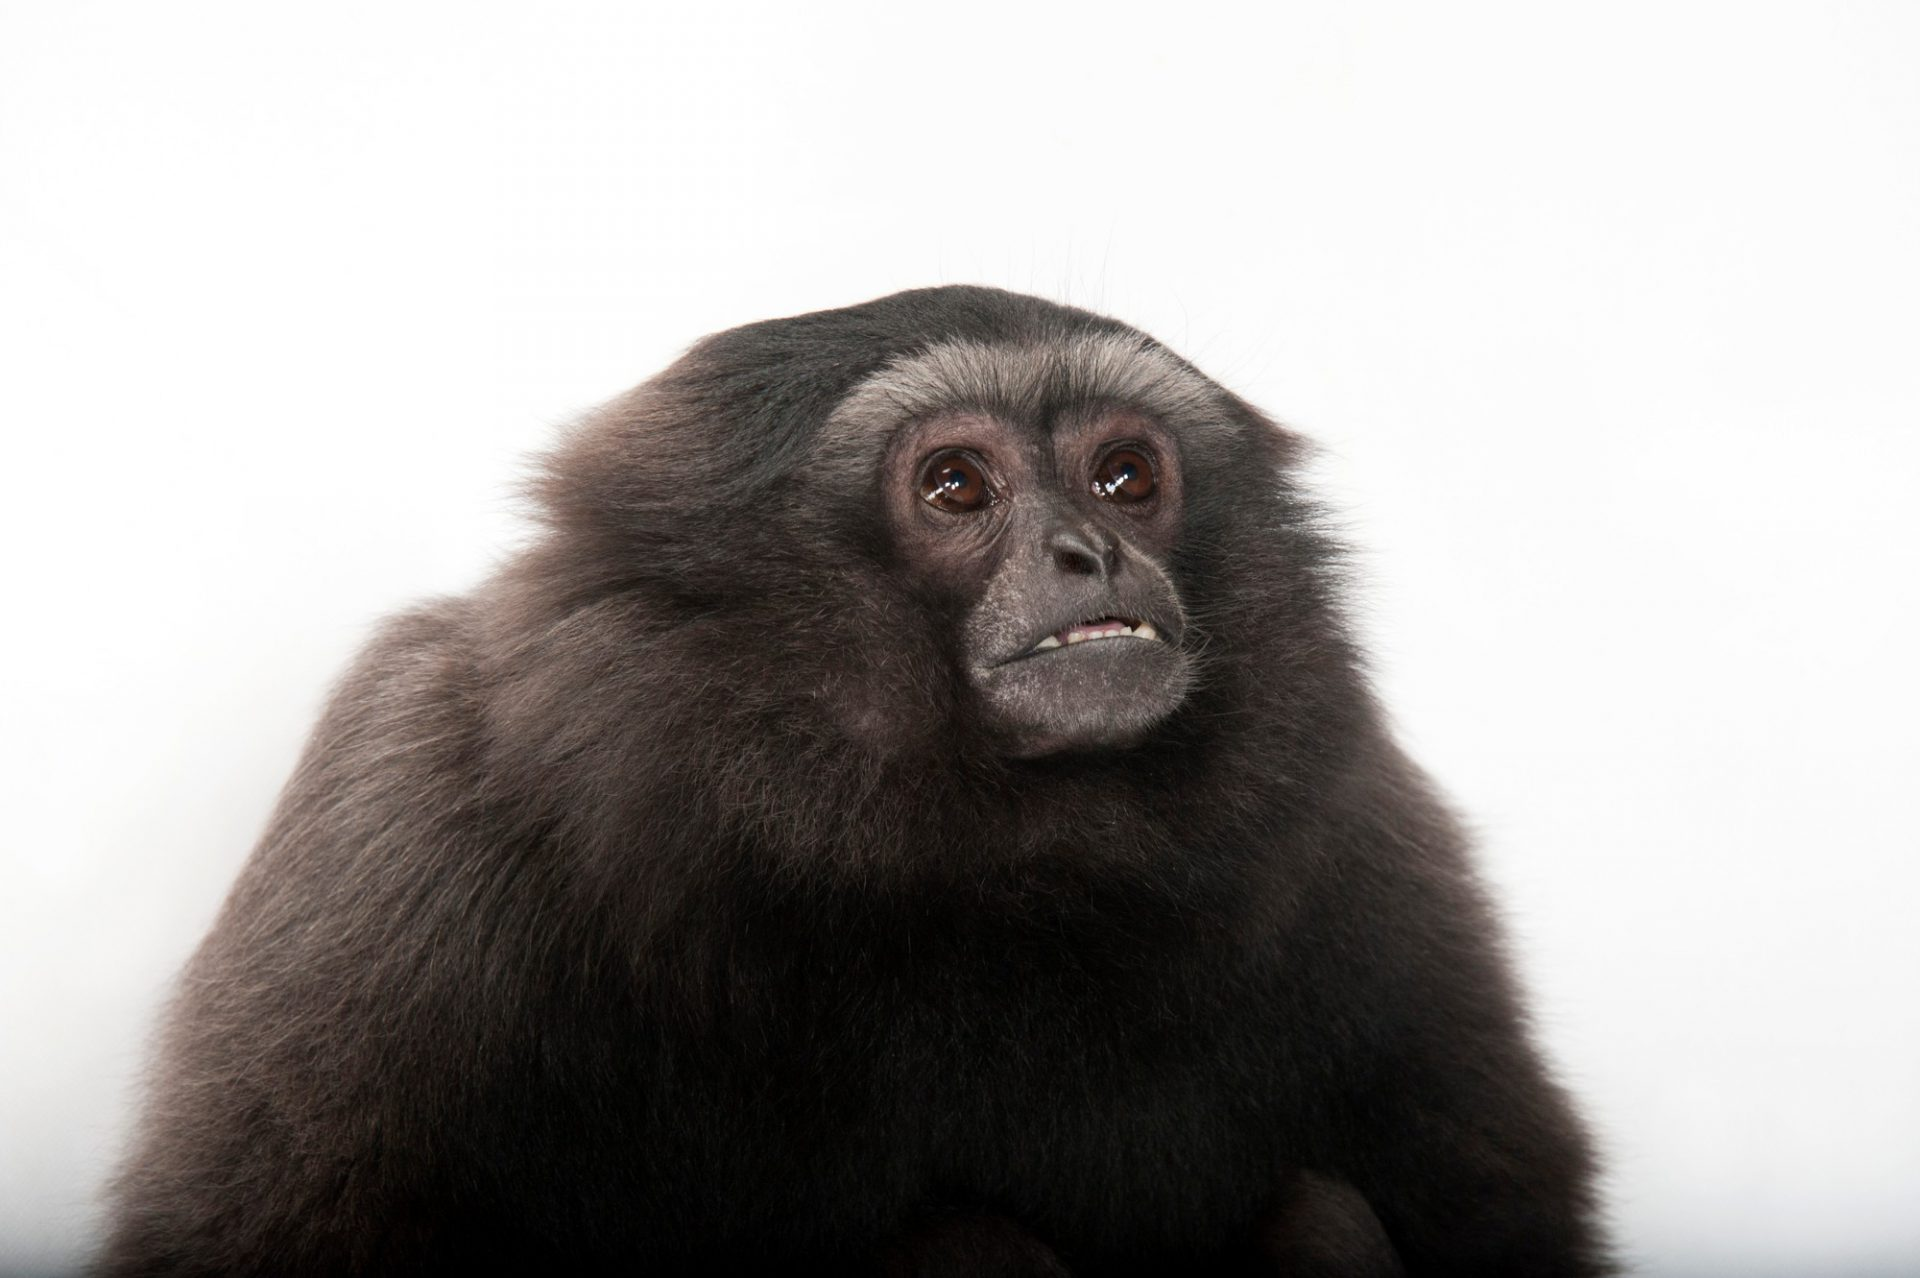 Photo: An endangered gray gibbon (Hylobates muelleri muelleri) at the Miller Park Zoo.